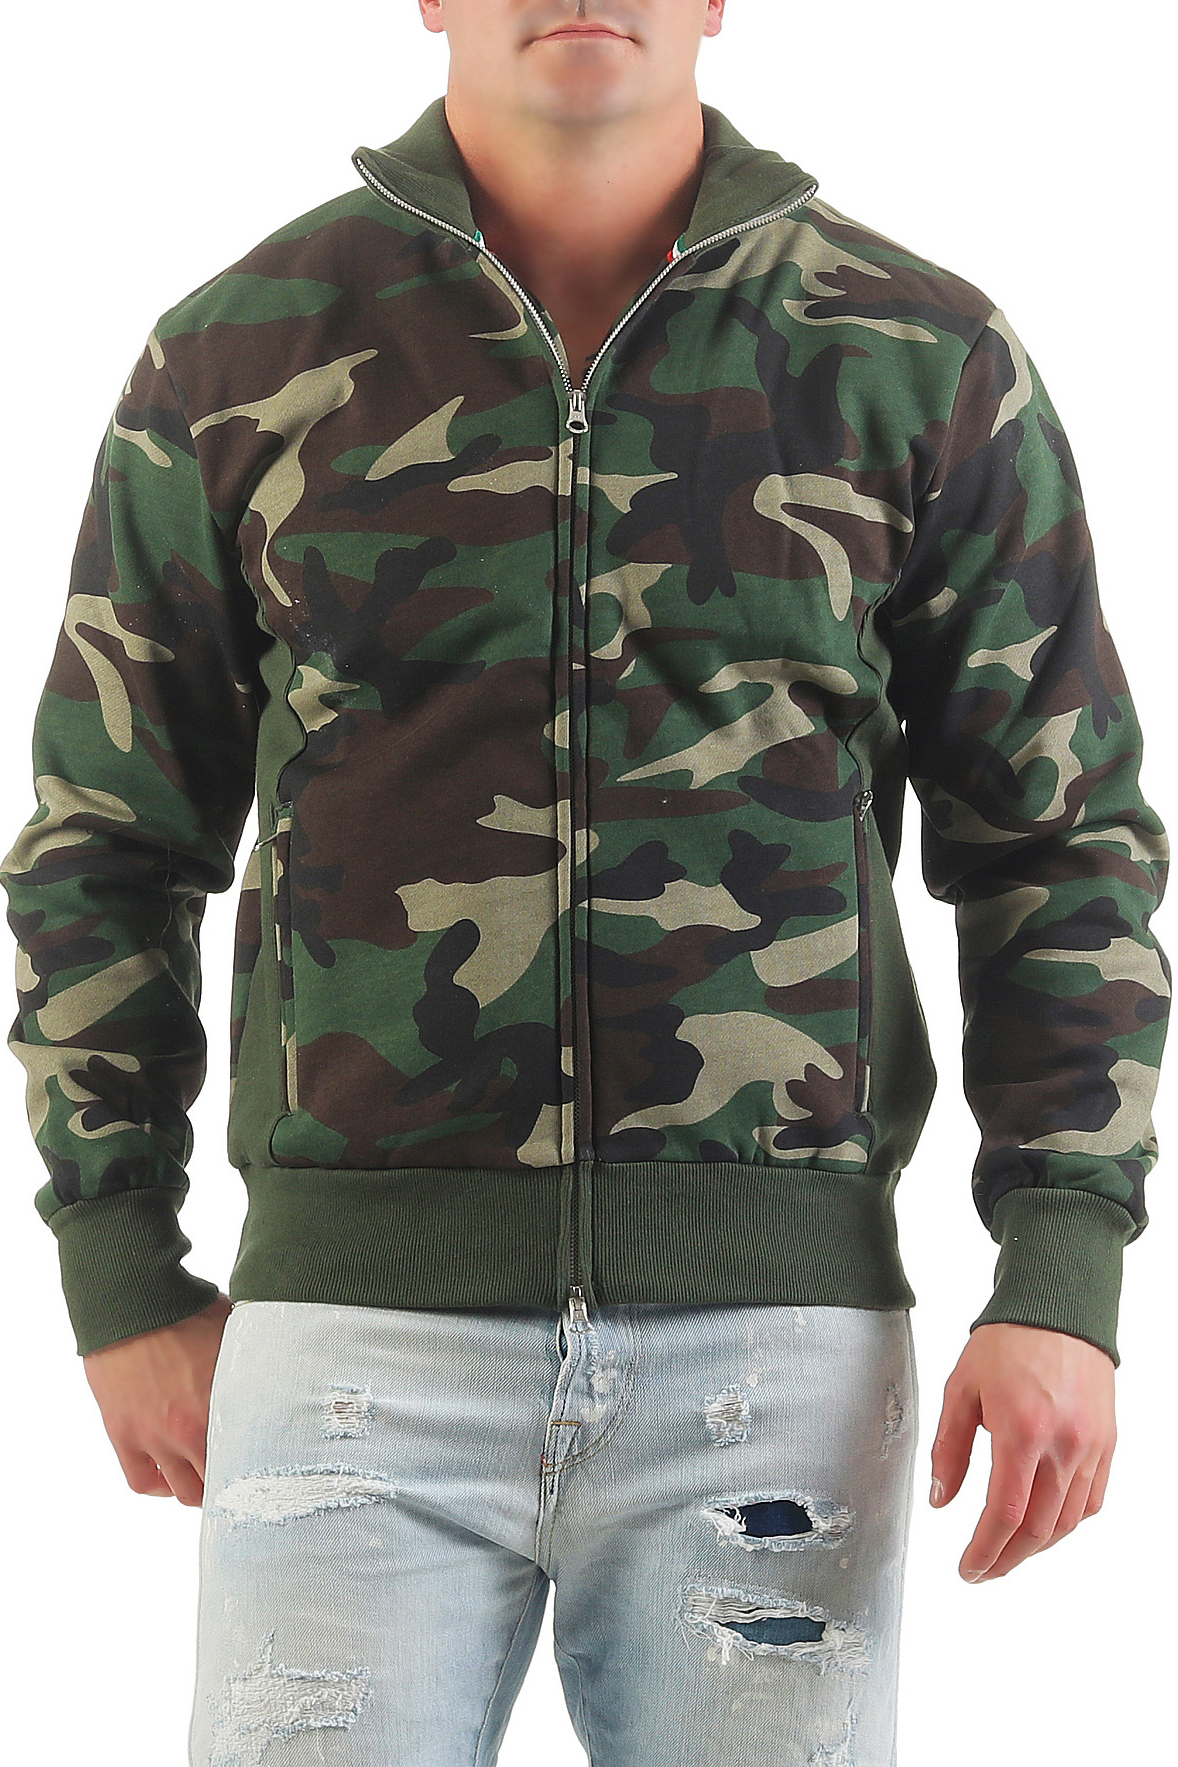 herren camouflage sweatjacke zip ohne kapuze class. Black Bedroom Furniture Sets. Home Design Ideas